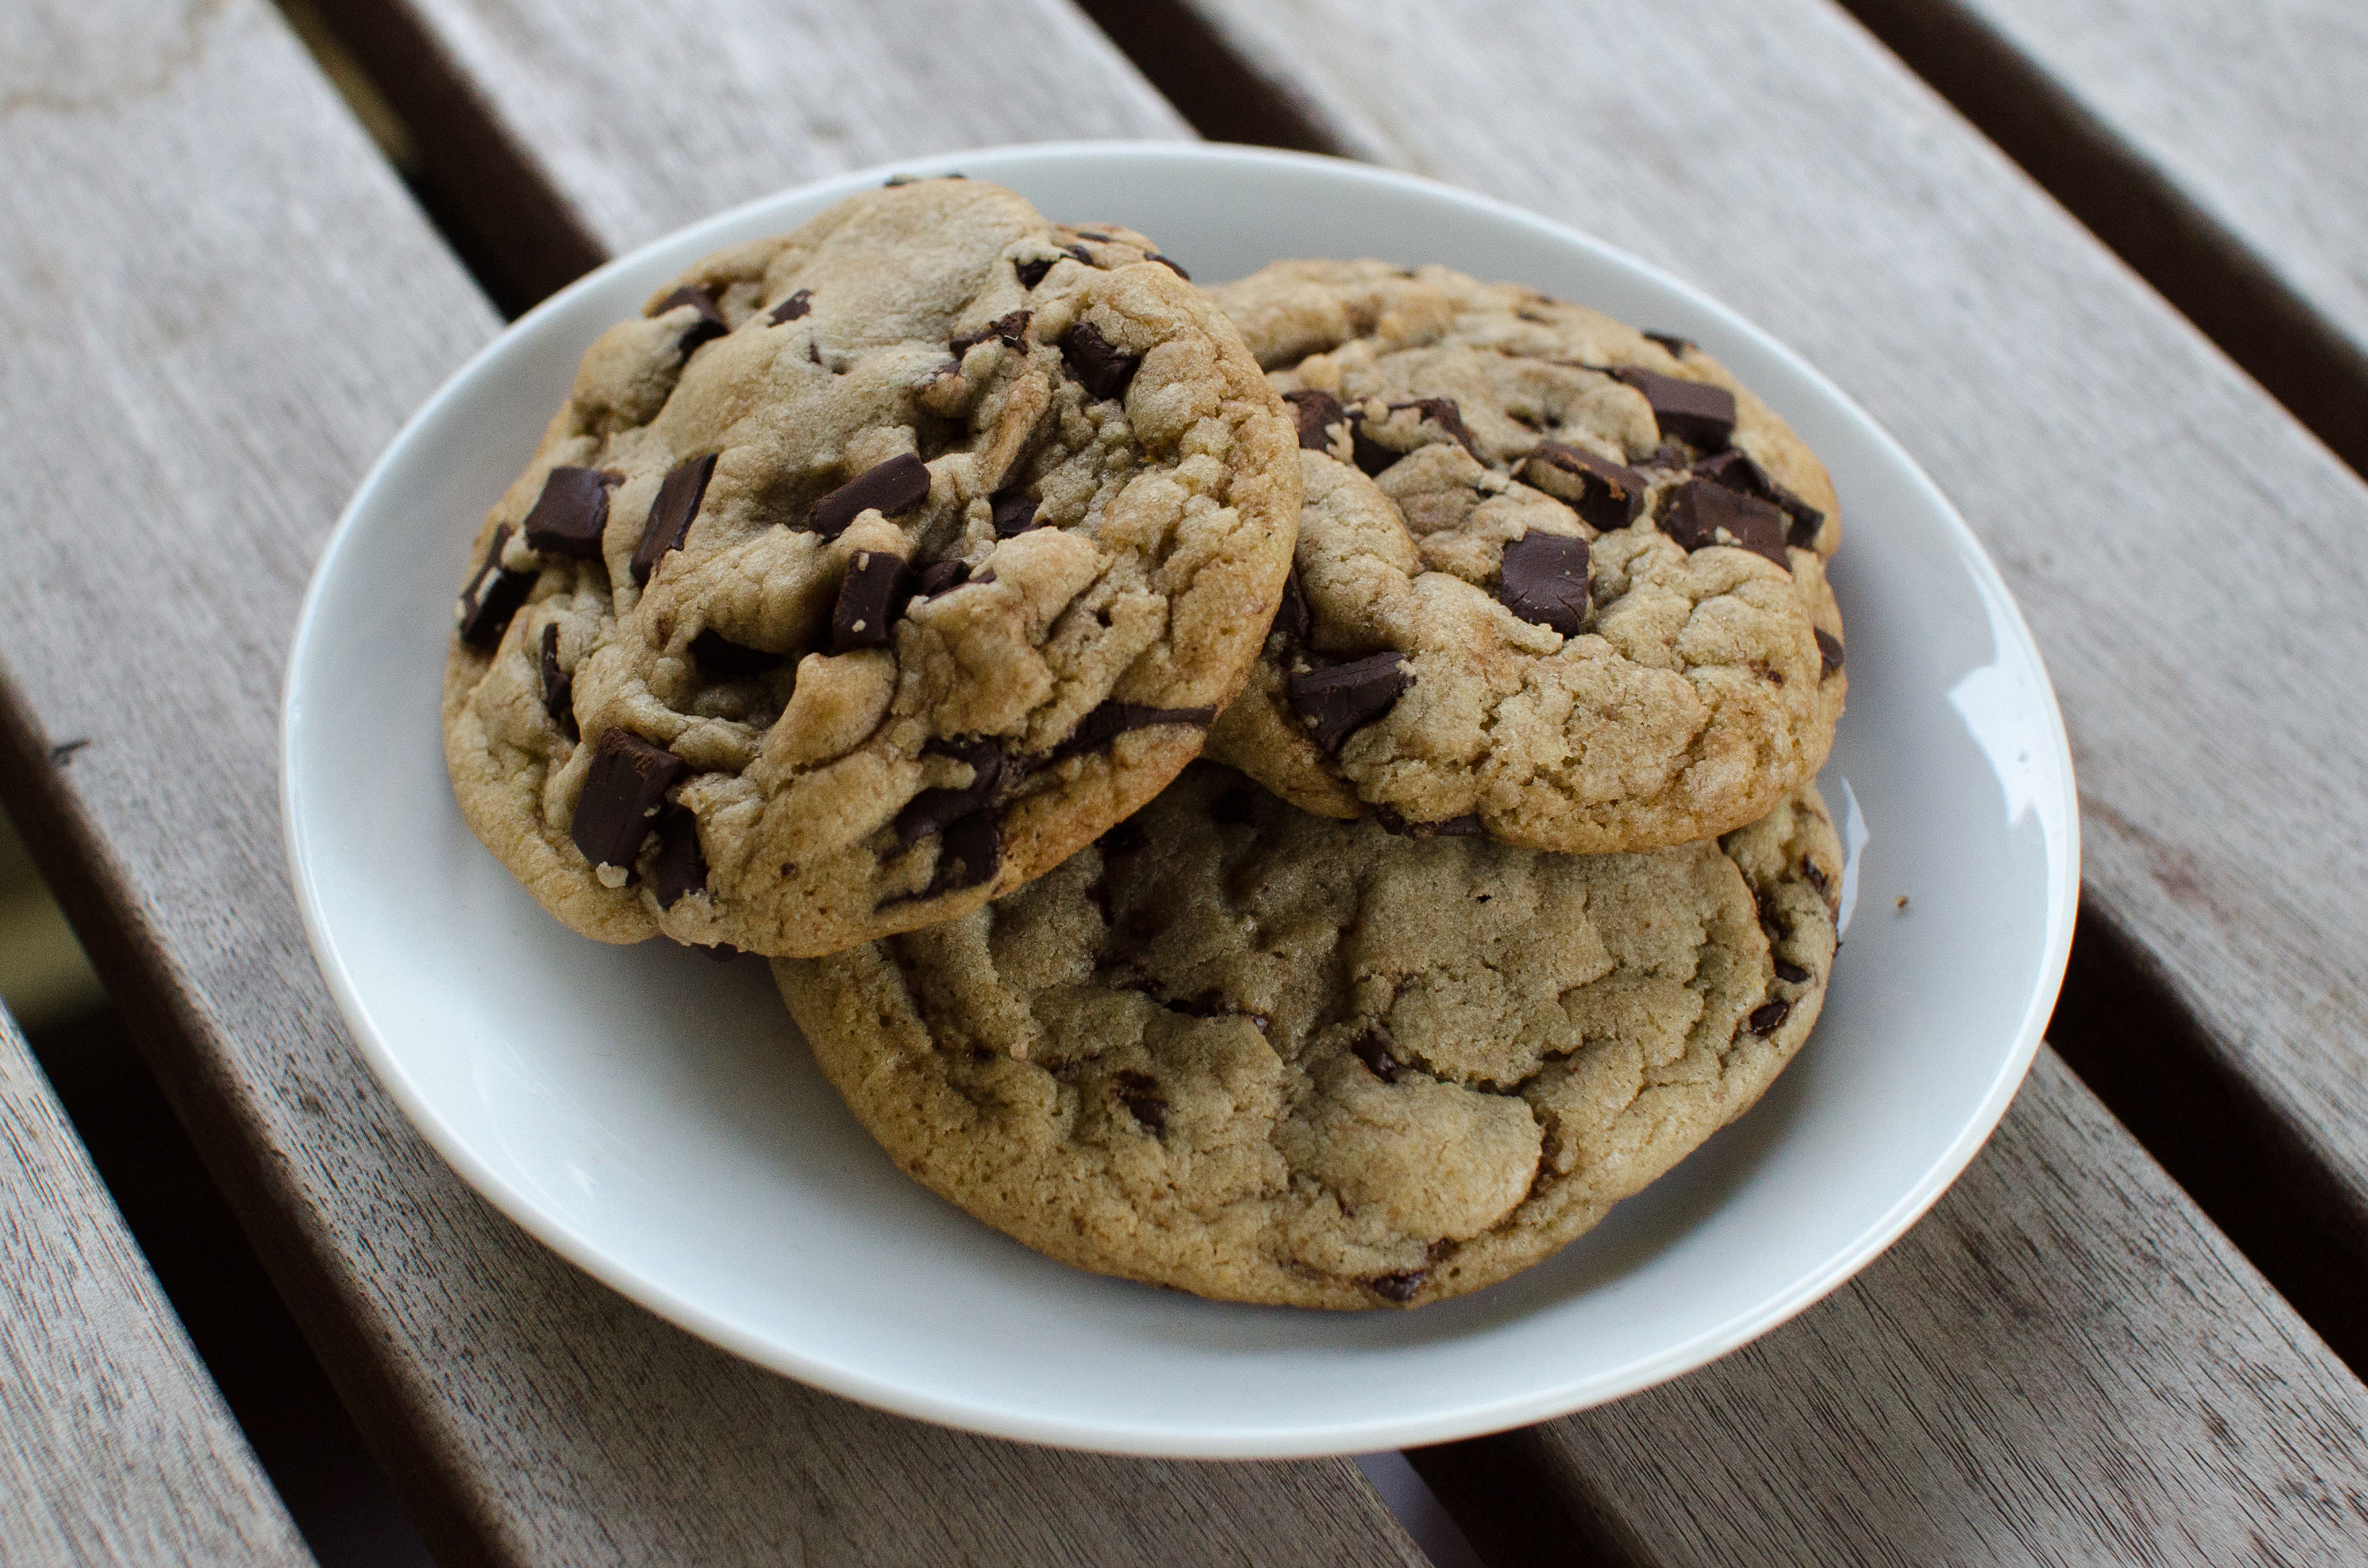 Three chocolate chip cookies on a plate.